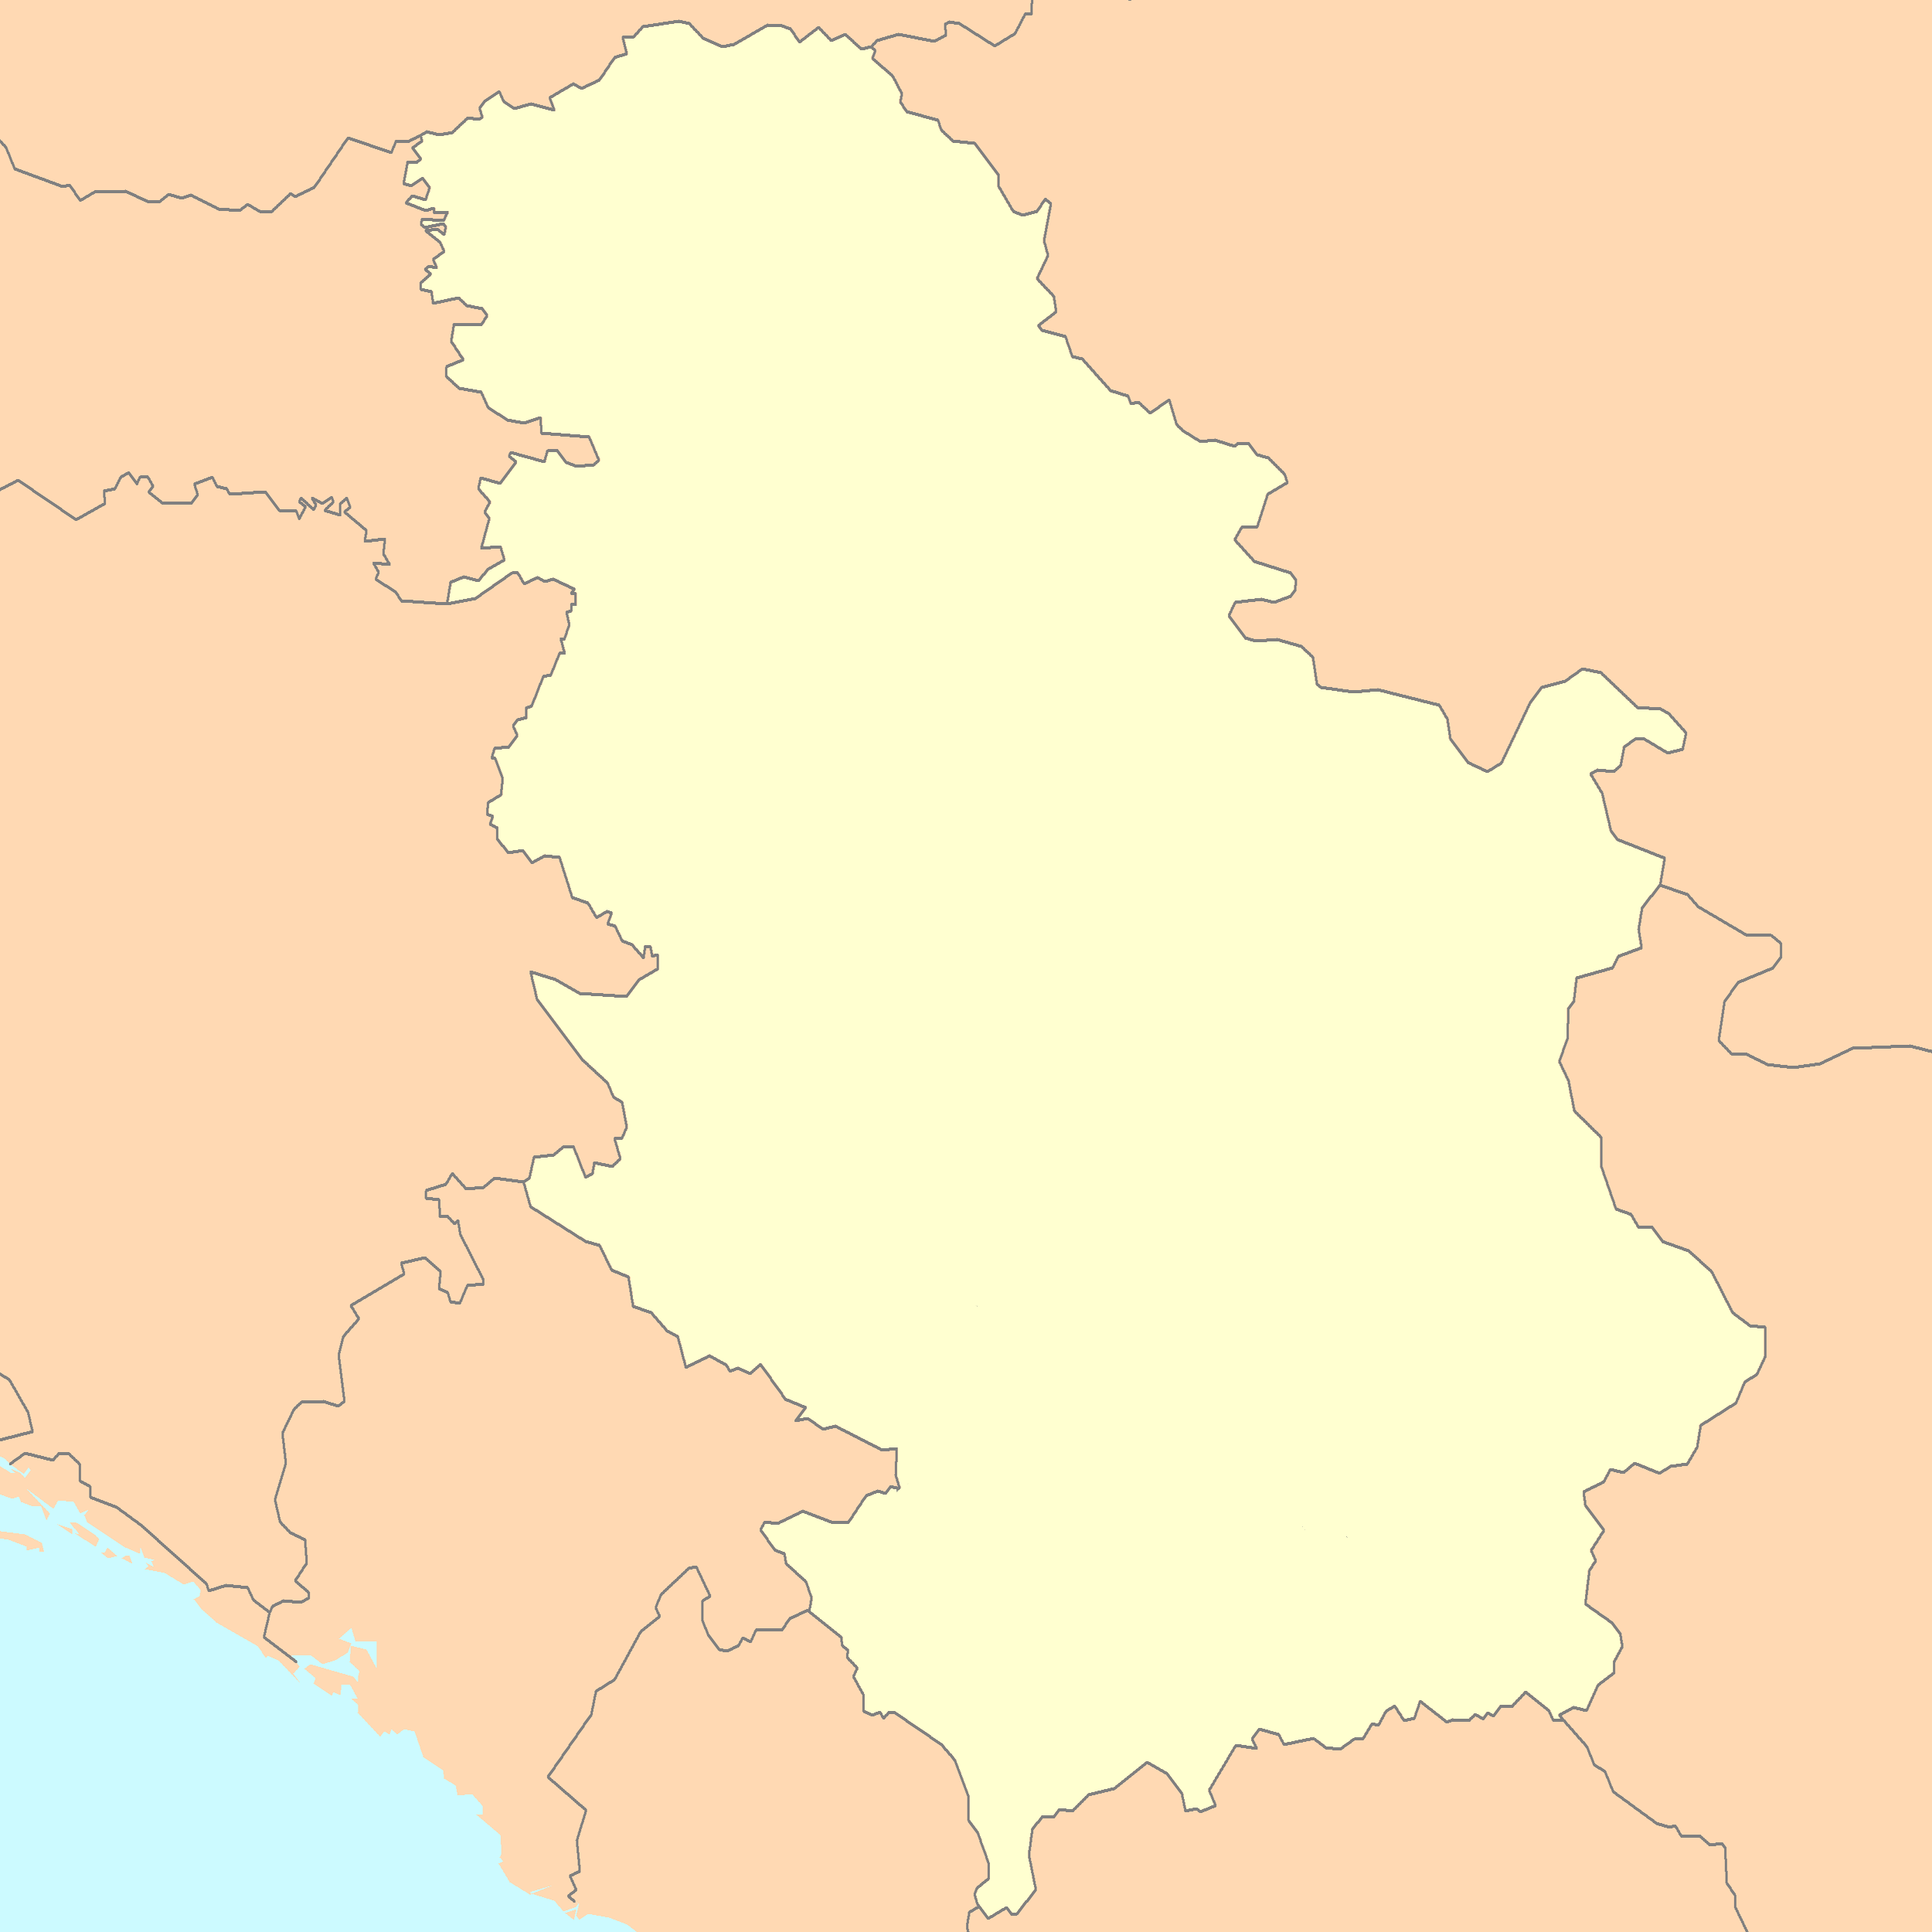 File:Serbia map blank.png - Wikimedia Commons